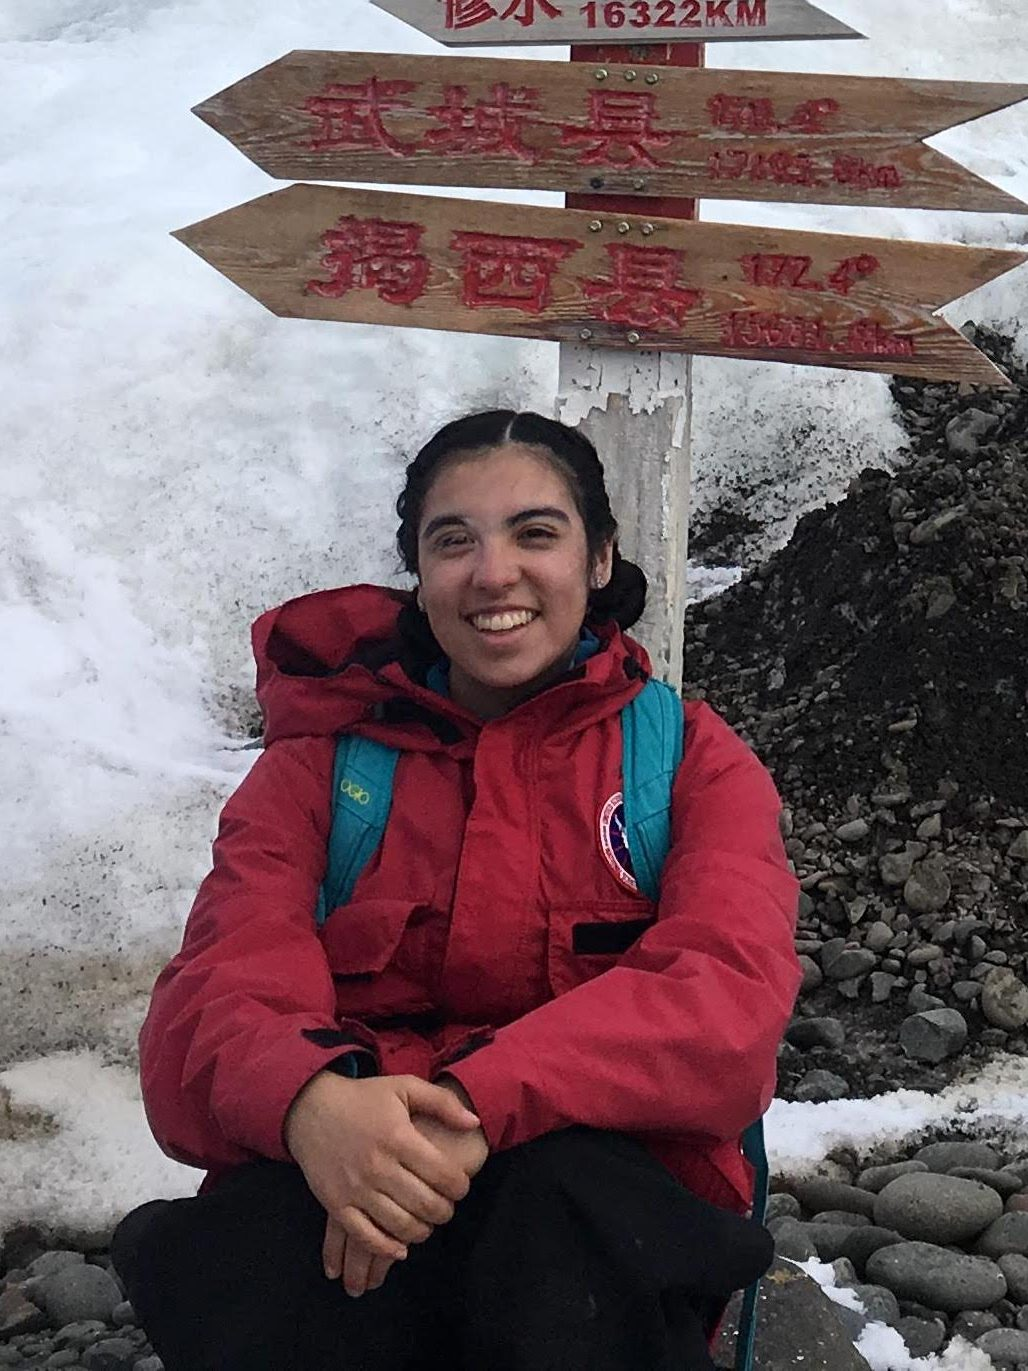 Sofía in front of hiking sign, smiling